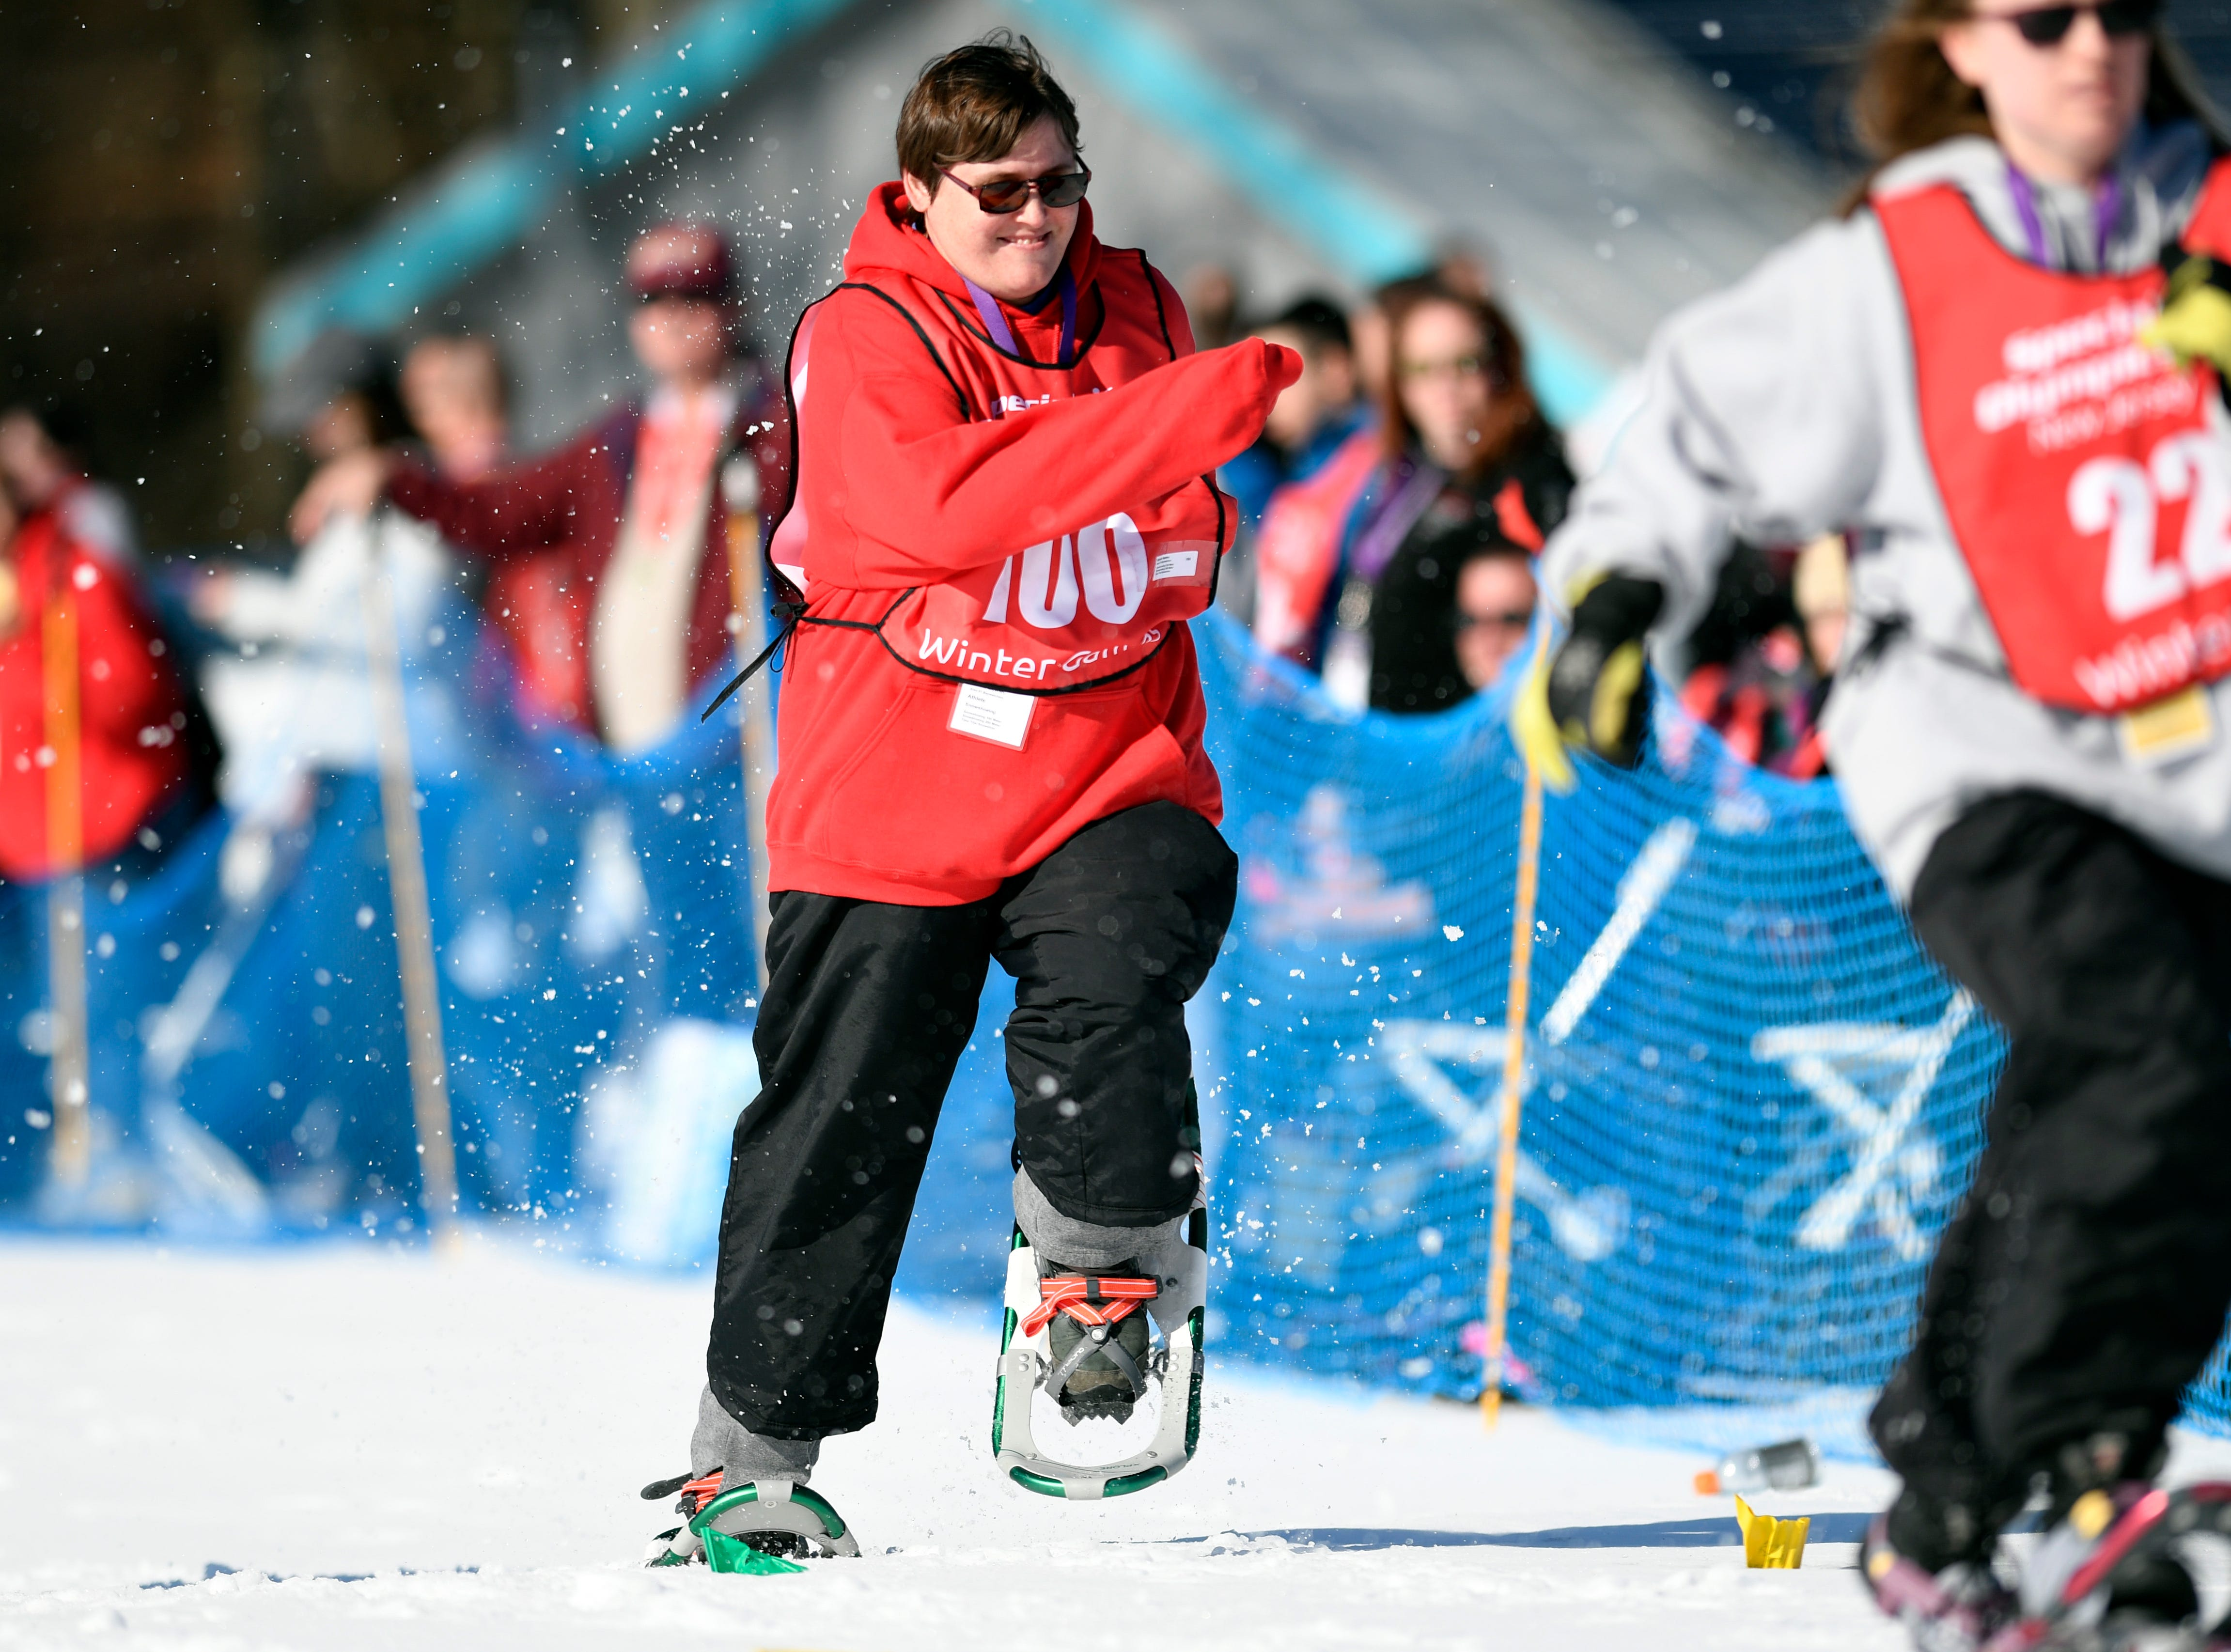 Nicole Bawiec of Bayonne competes in the snowshoeing 200-meter during the Special Olympics New Jersey 2019 Winter Games on Tuesday, Feb. 5, 2019, in Vernon.